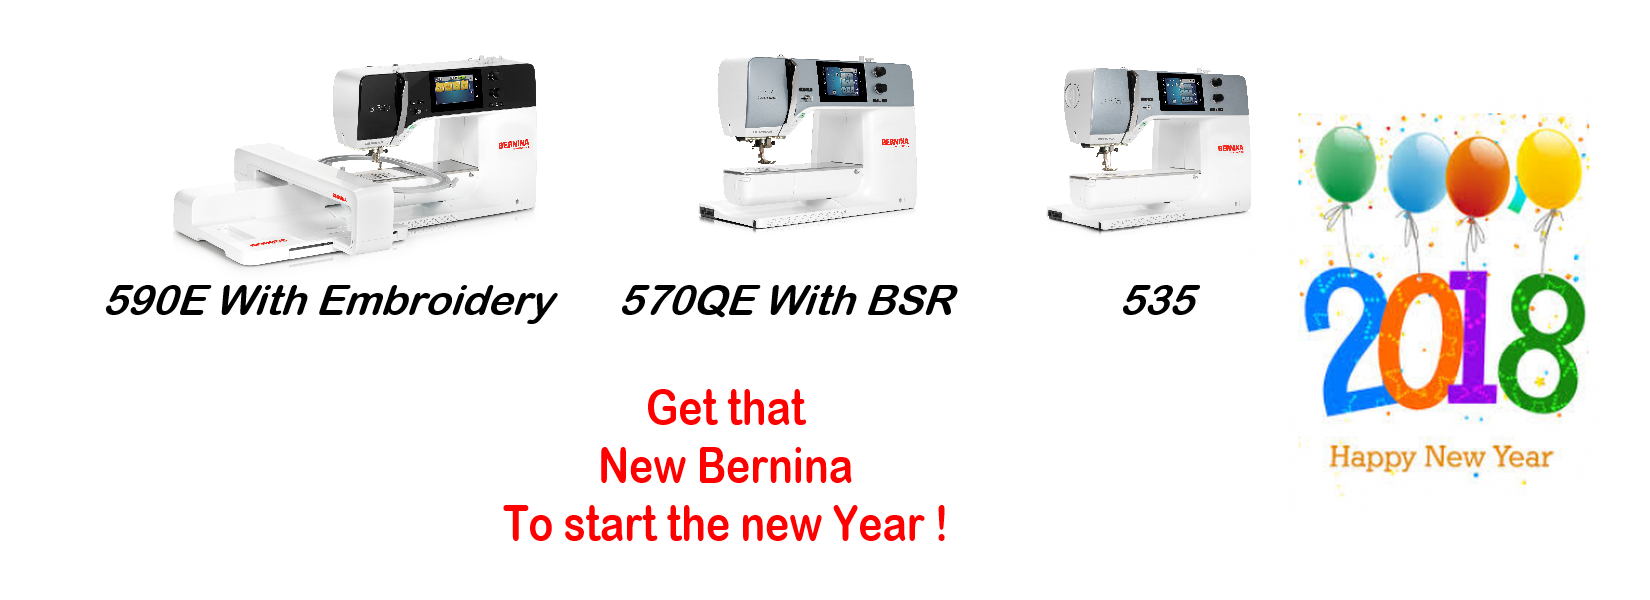 Start new year with new Bernina sewing machine.